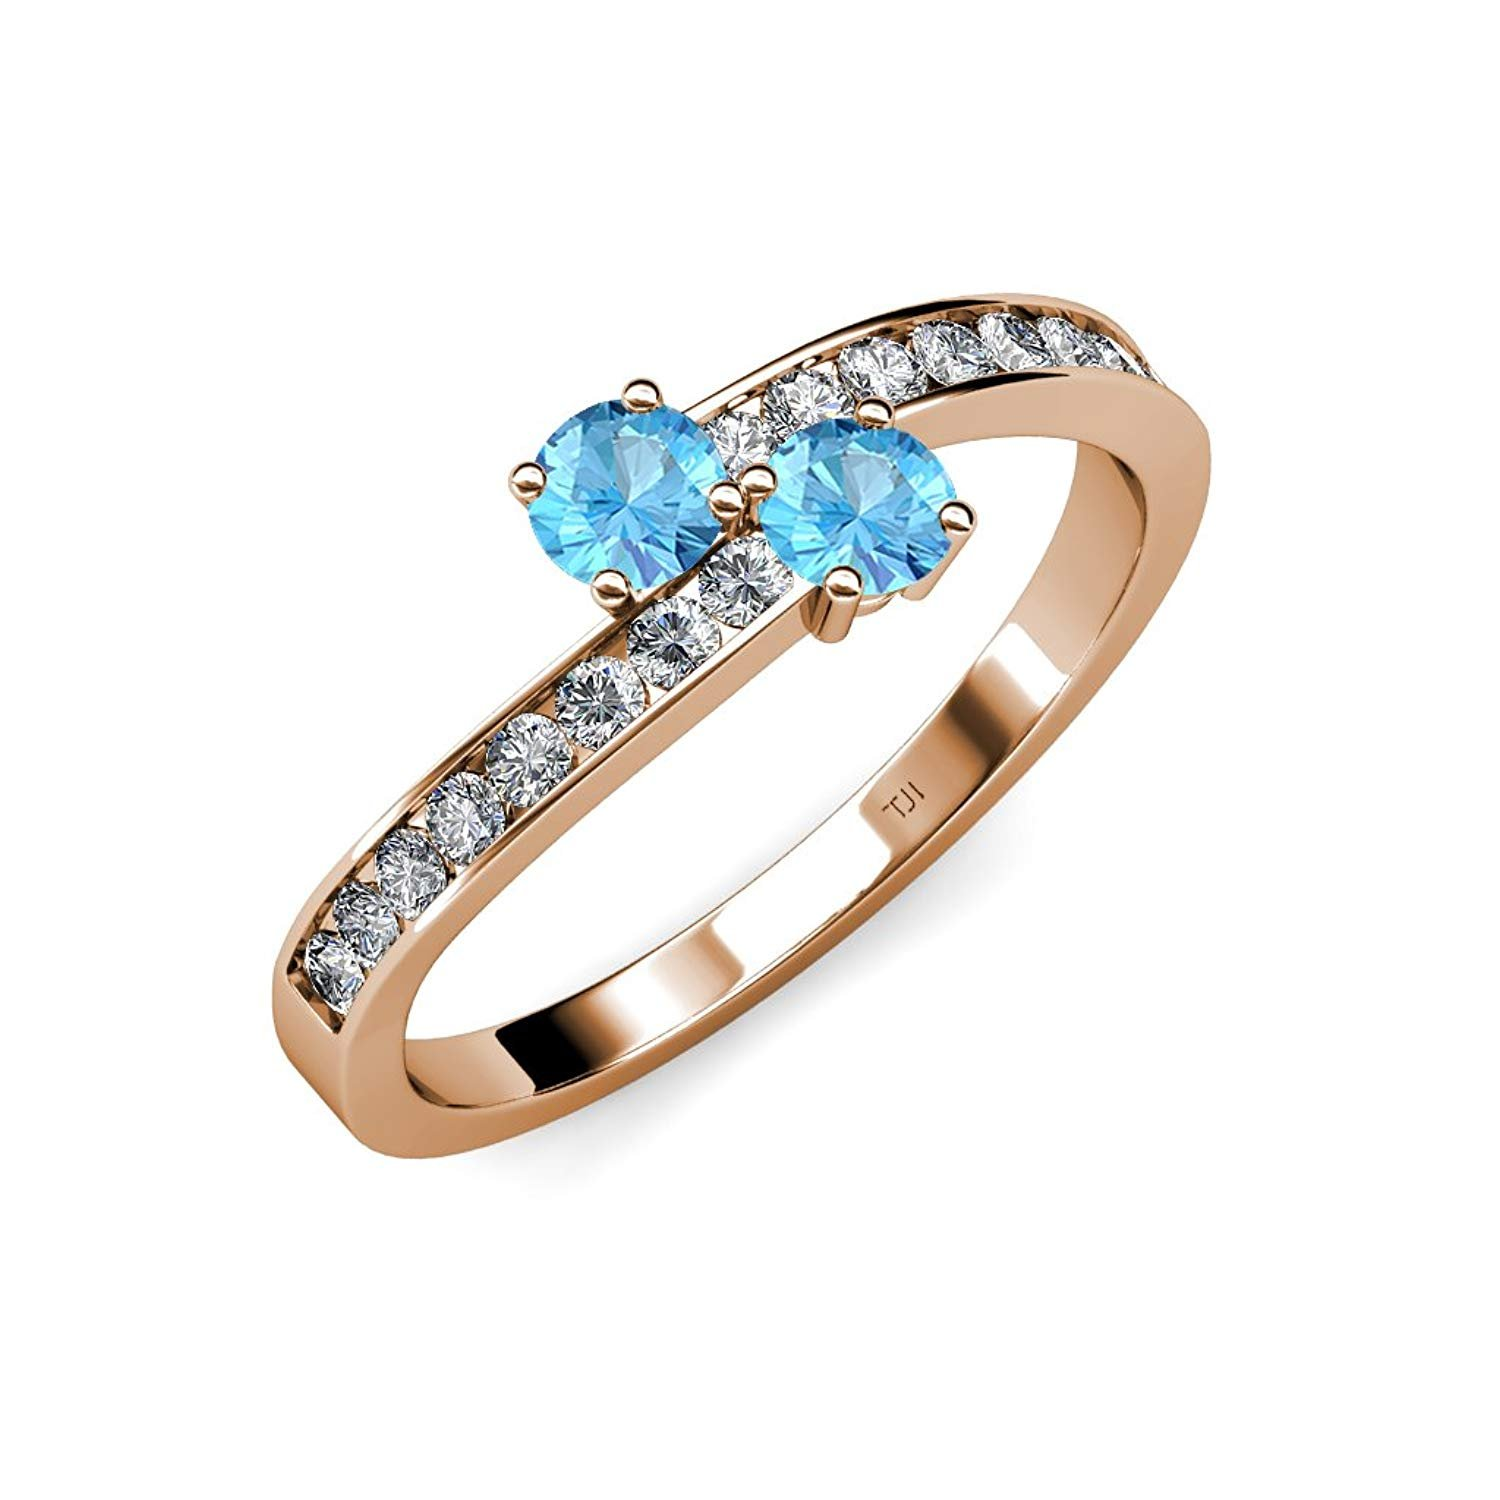 Blue Topaz 2 Stone with Side Diamonds Bypass Engagement Ring 1.32 ct tw in 14K Rose Gold.size 8.5 by TriJewels